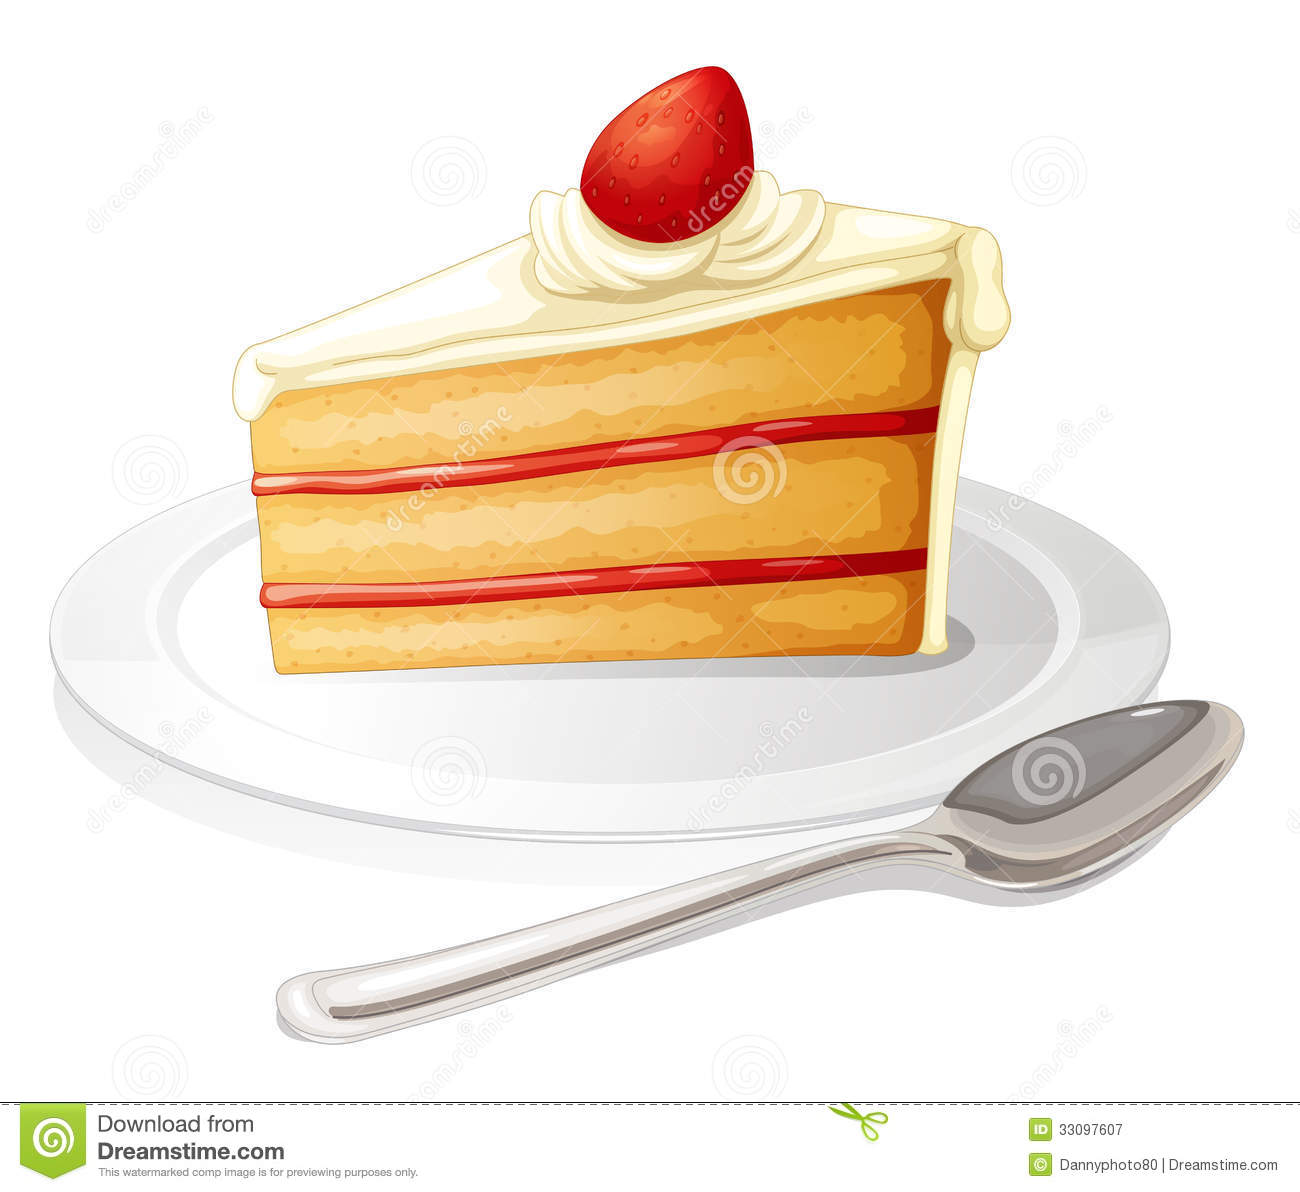 Cute slice of cake clipart image free download Rainbow Cake Clipart - Clipart Kid image free download